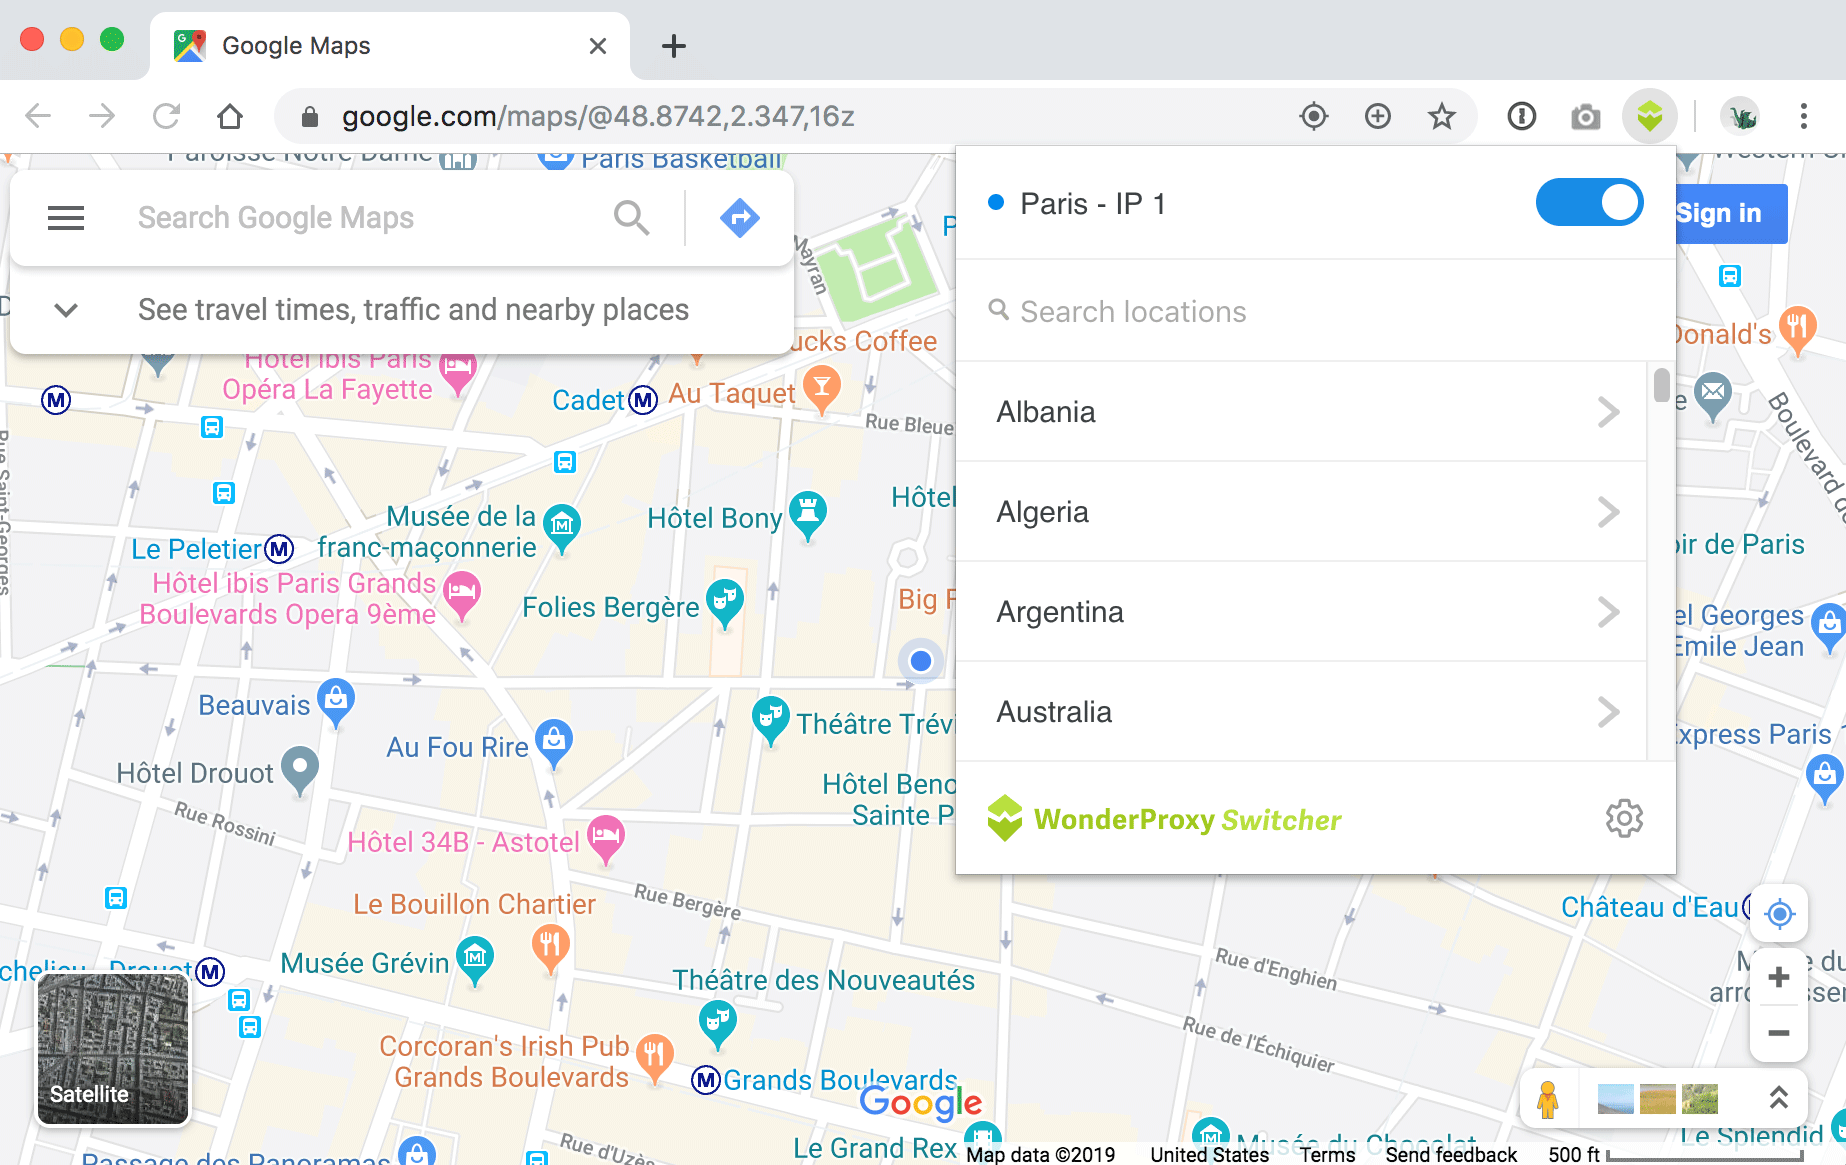 Testing Google Maps with Switcher extension using Paris proxy server